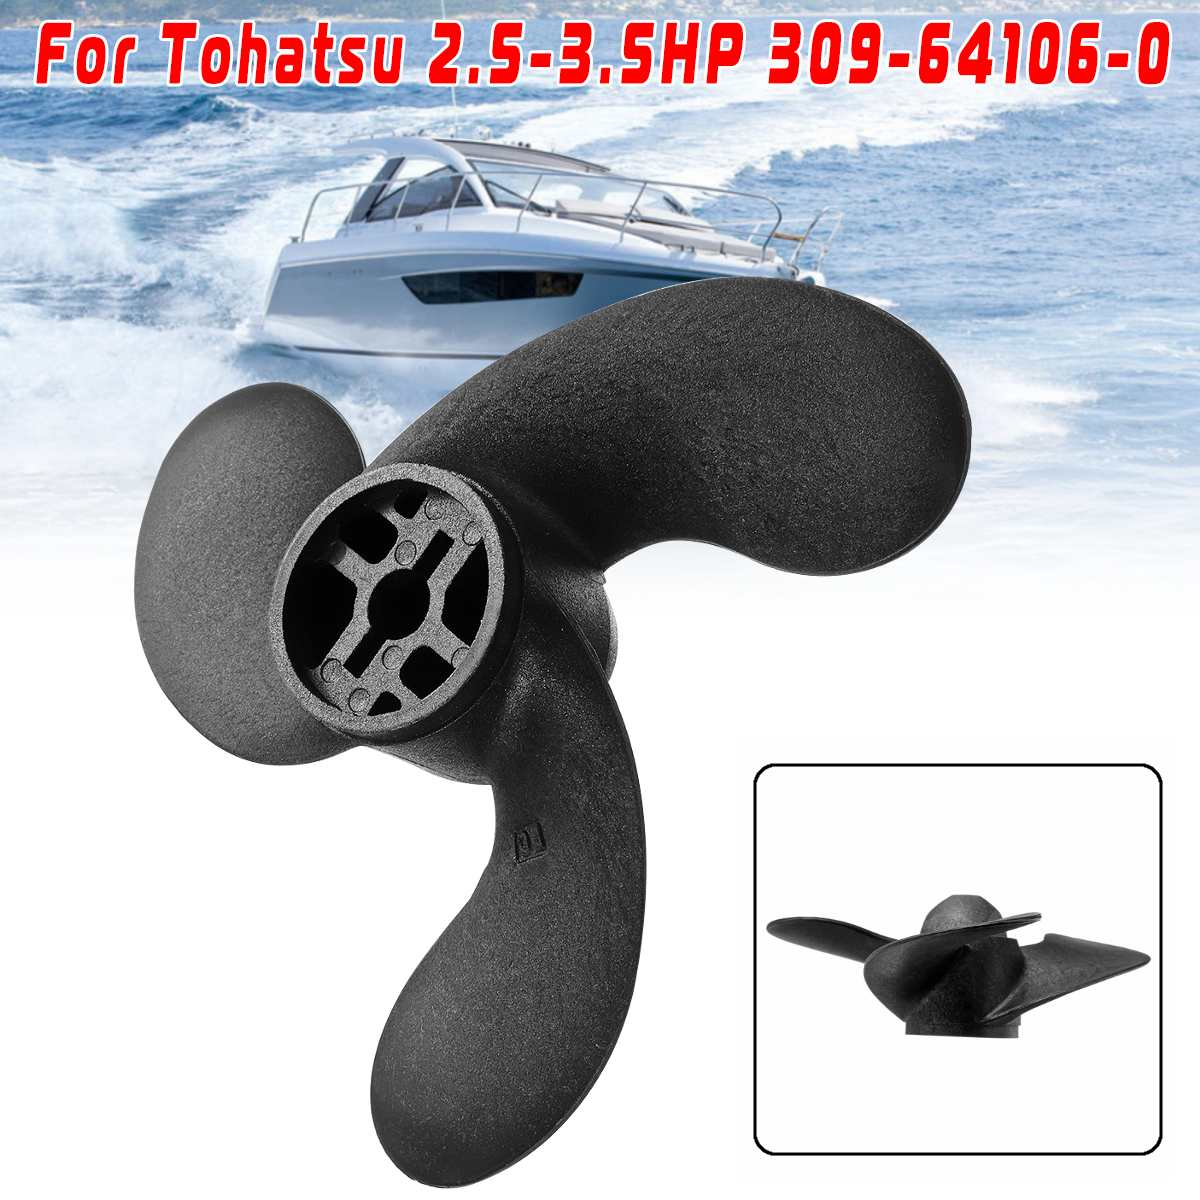 11.1 x 13 Aluminum Boat Propeller For Tohatsu//Nissan Outboard 35-50HP 3T5B645270